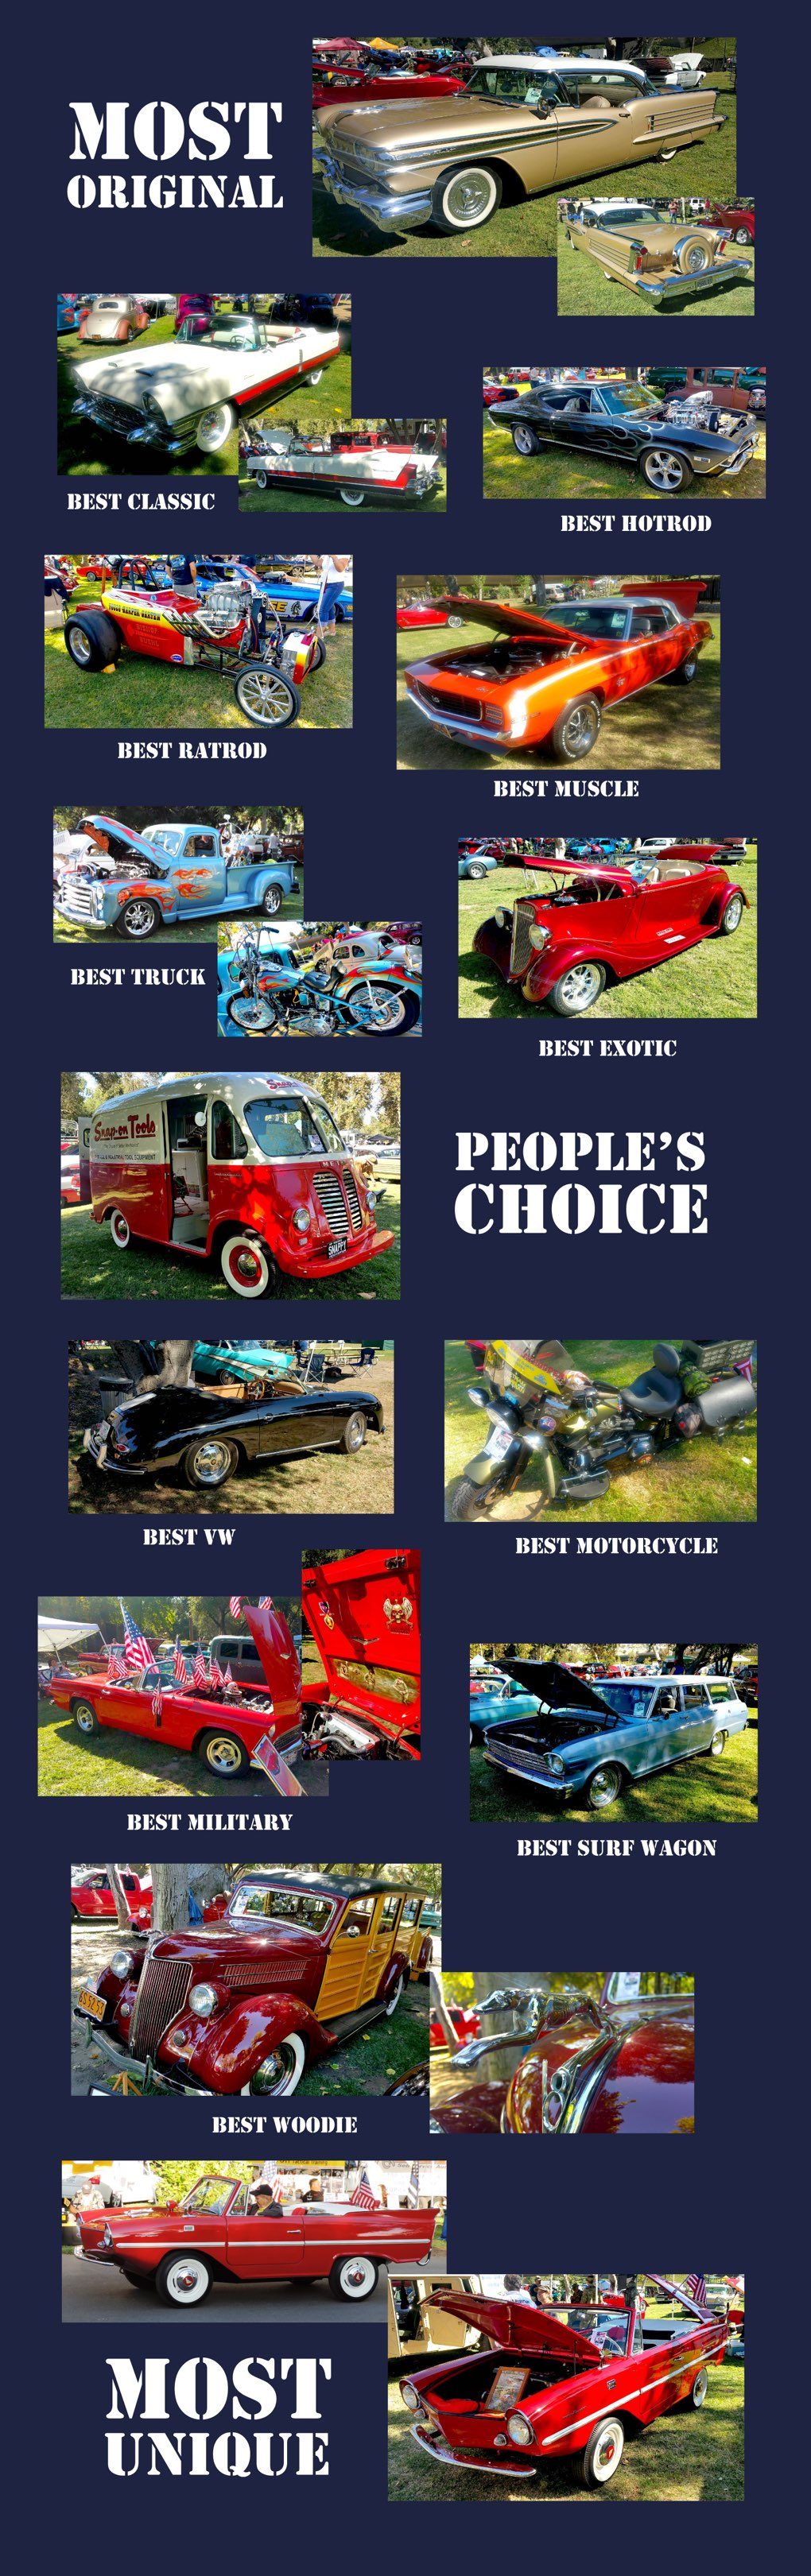 2017 Car Show Winners